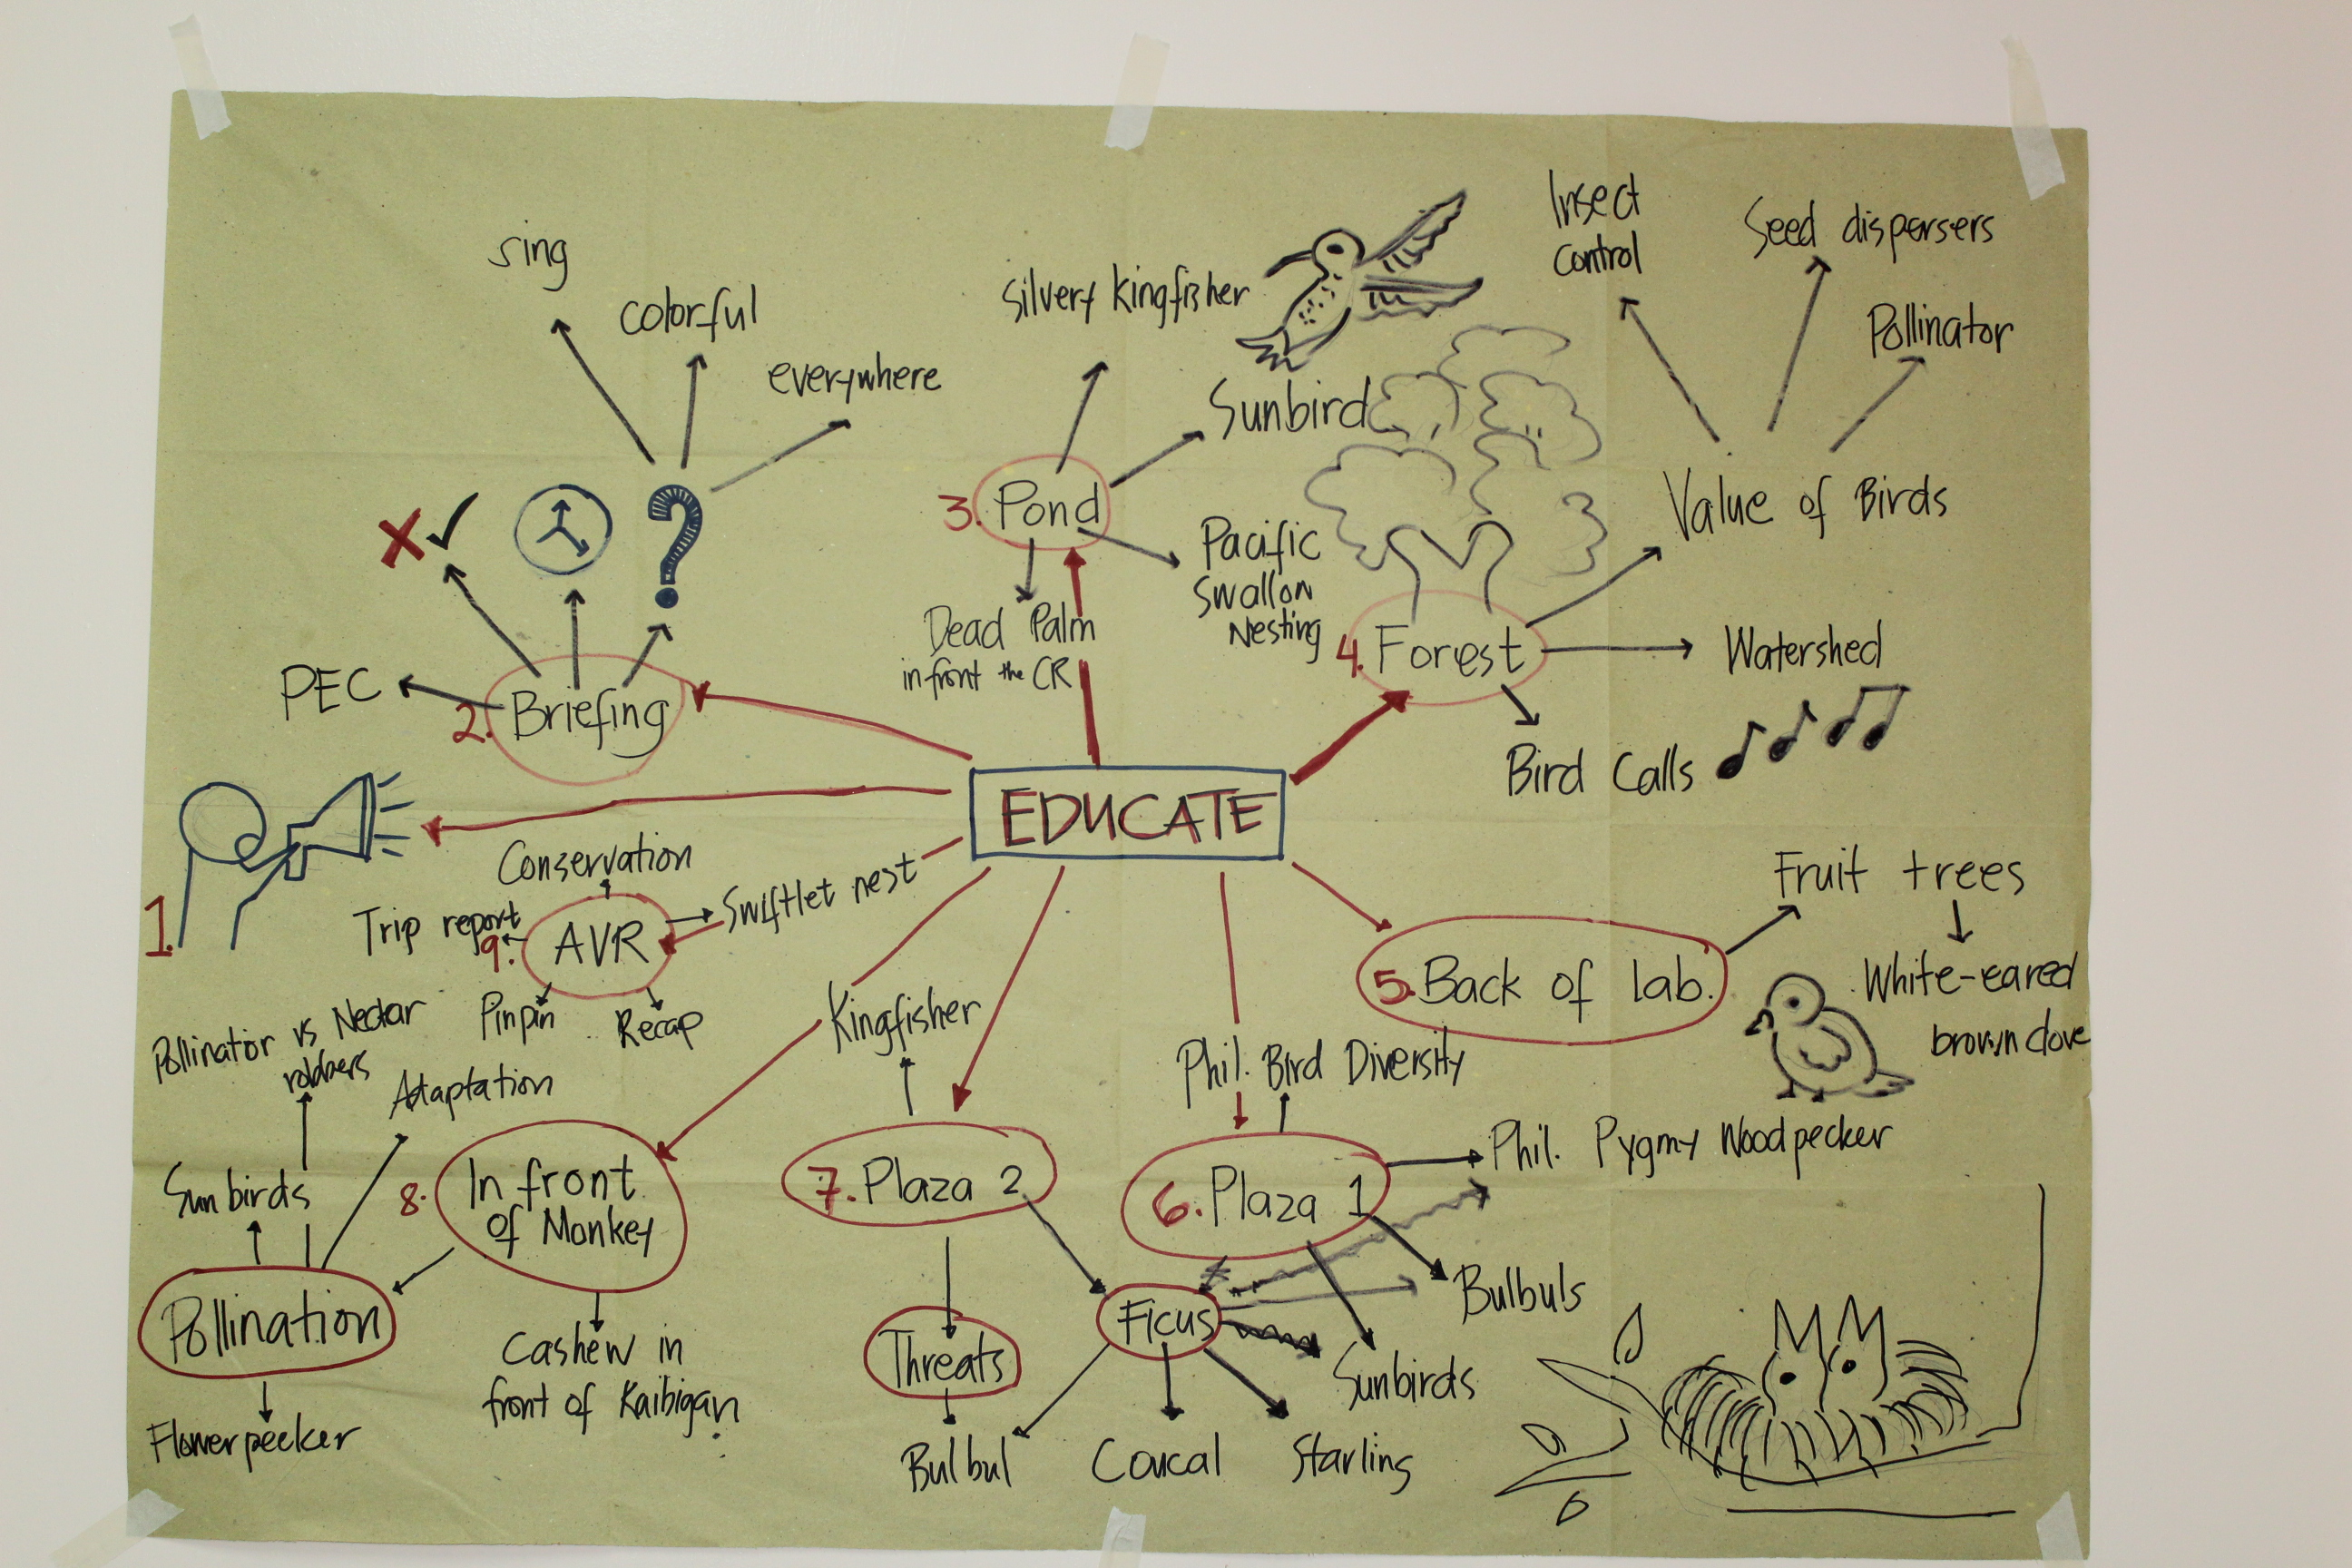 Mind map of a guided bird walk around the PEC. Photo by Philippine Eagle Foundation.